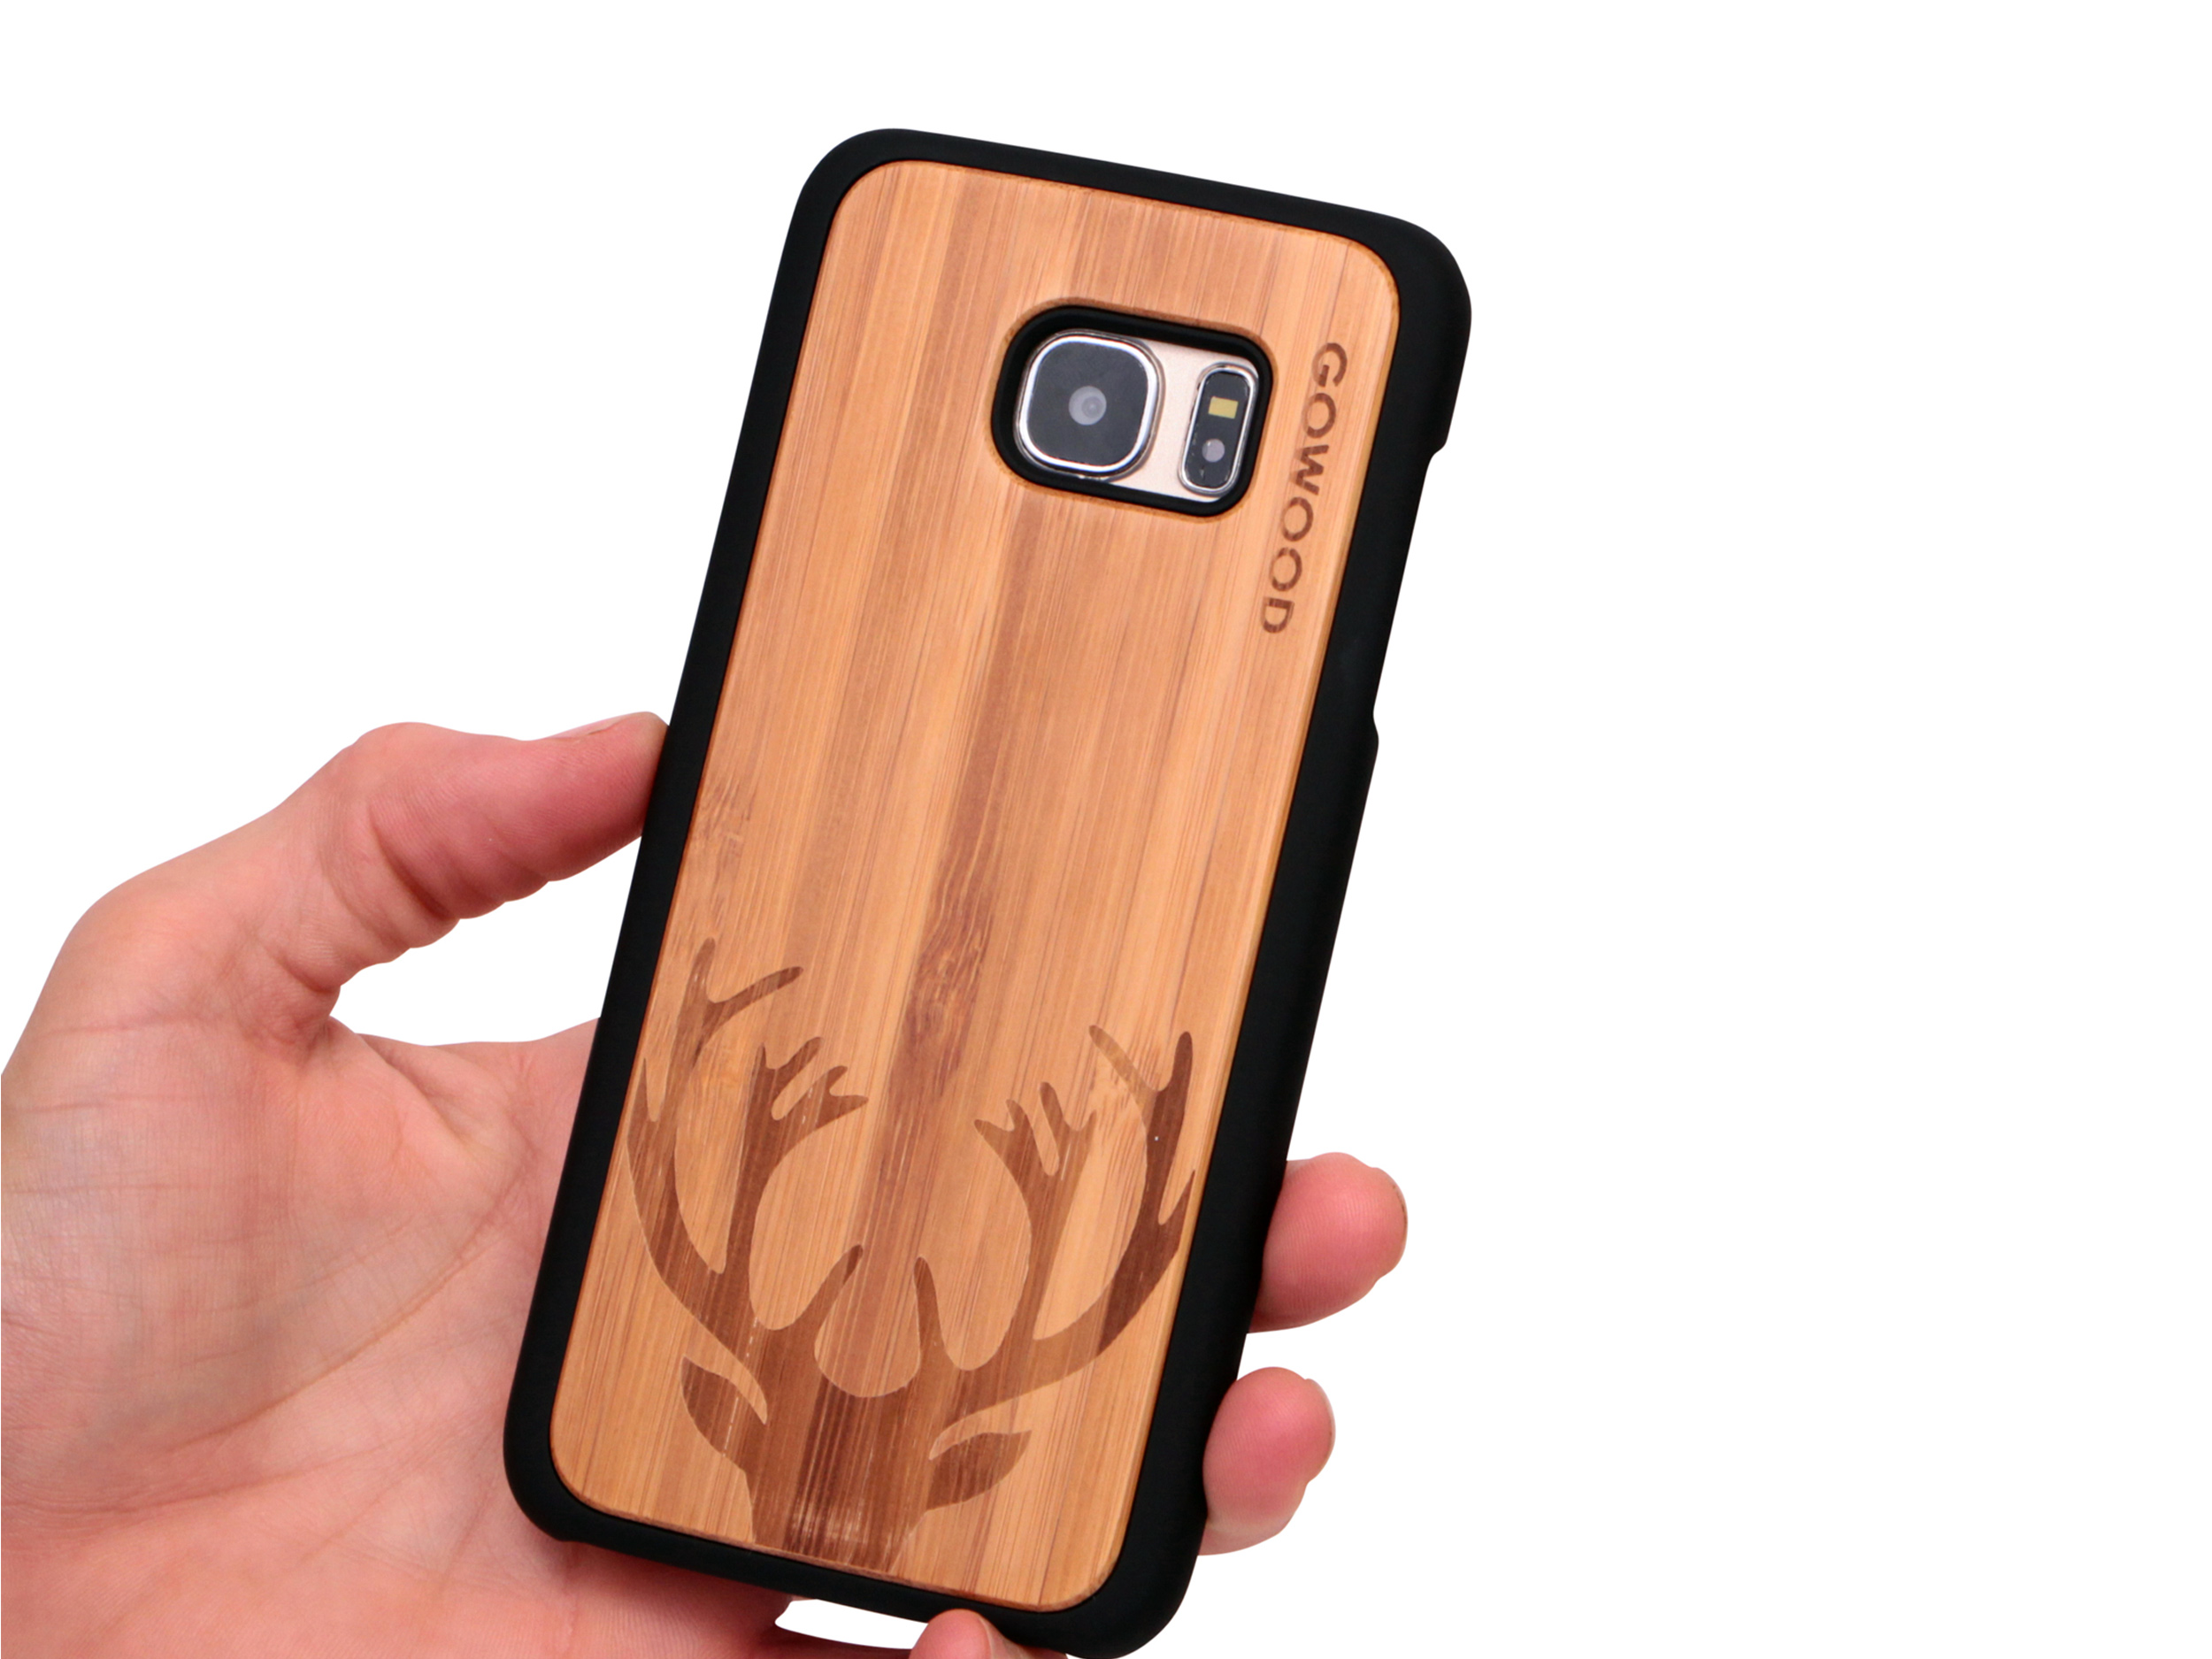 Samsung Galaxy S7 Edge wood case deer user 1